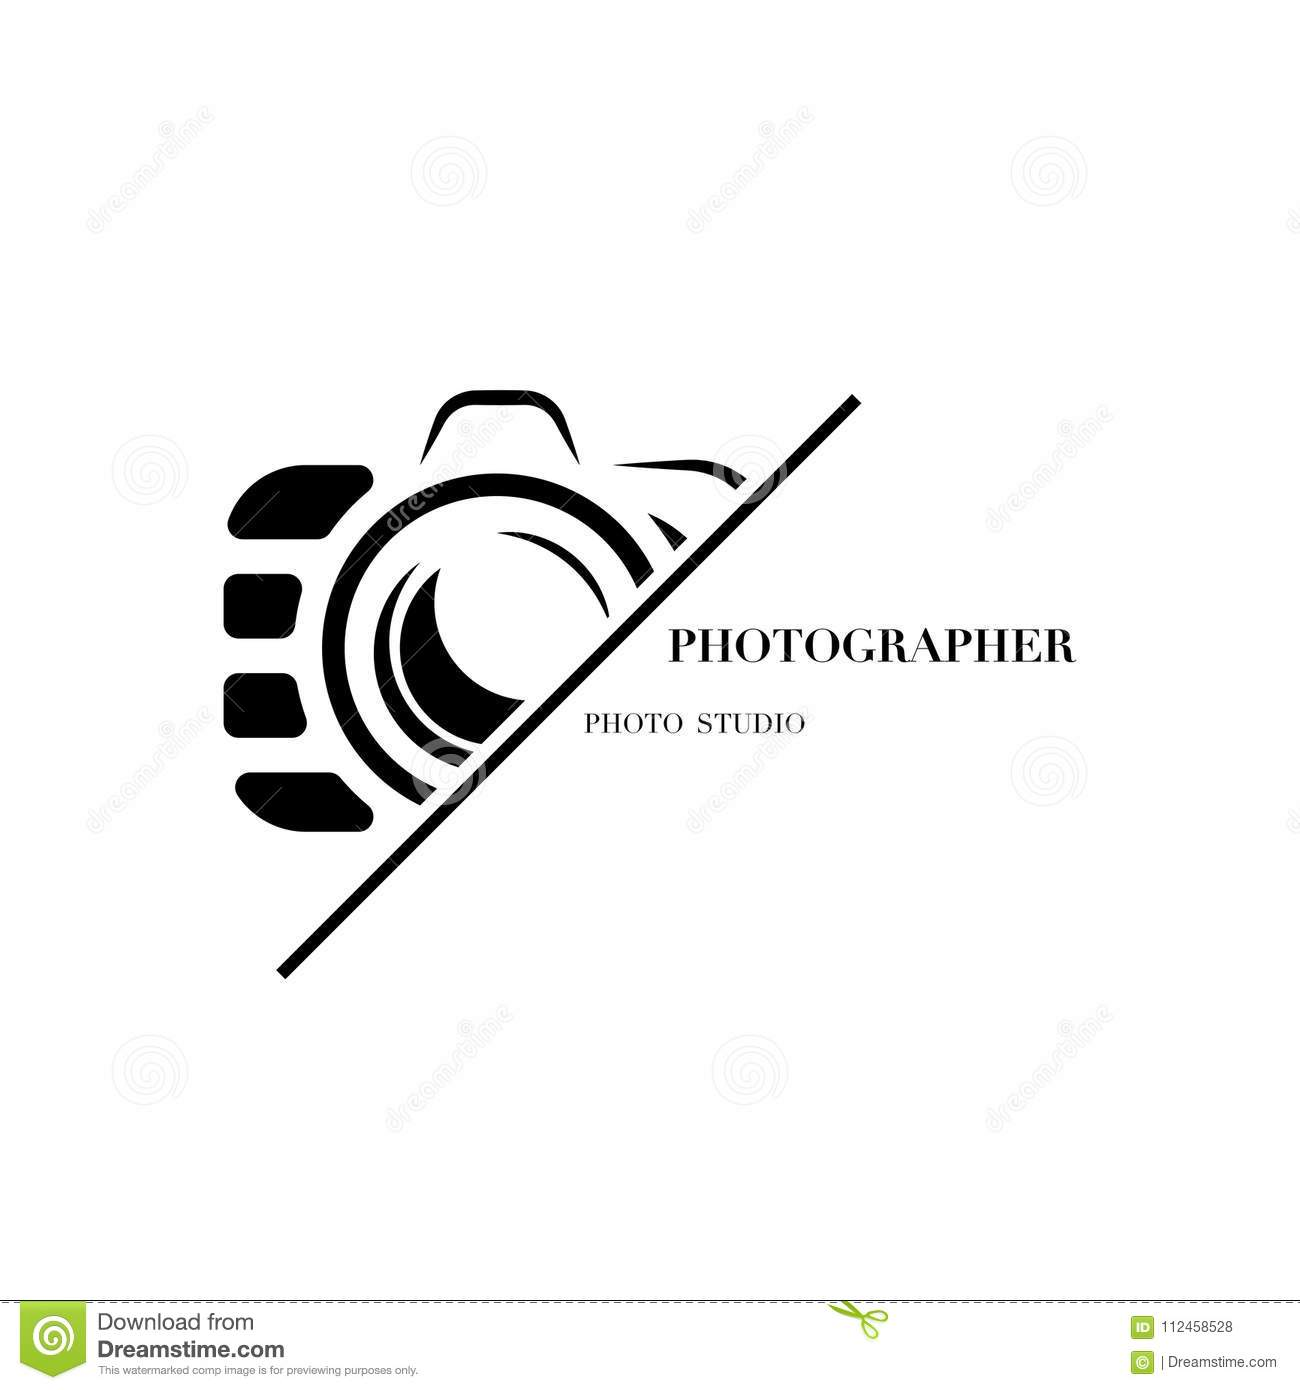 Abstract Camera Logo Vector Design Template For